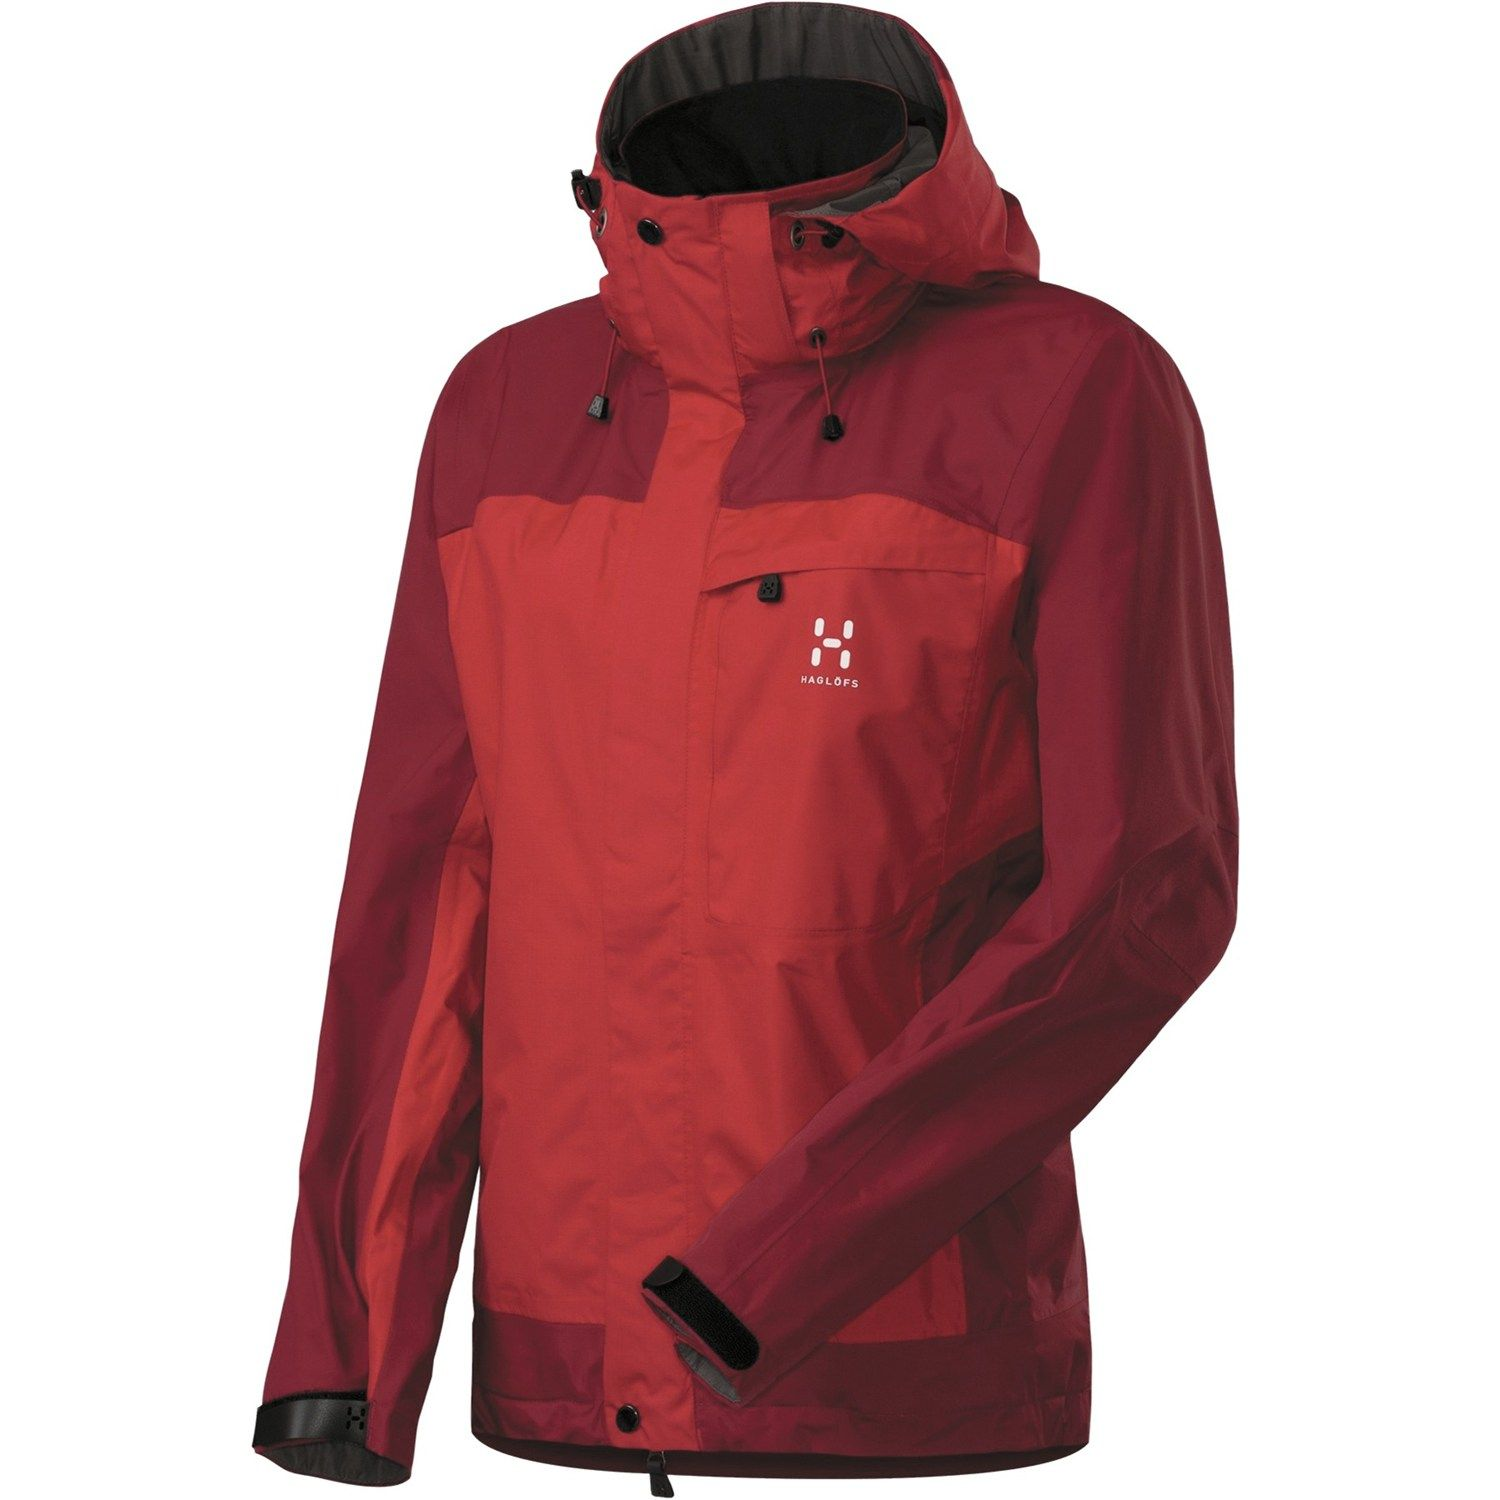 Haglofs Orion Gore Tex Jacket Waterproof For Women Sale 167 99